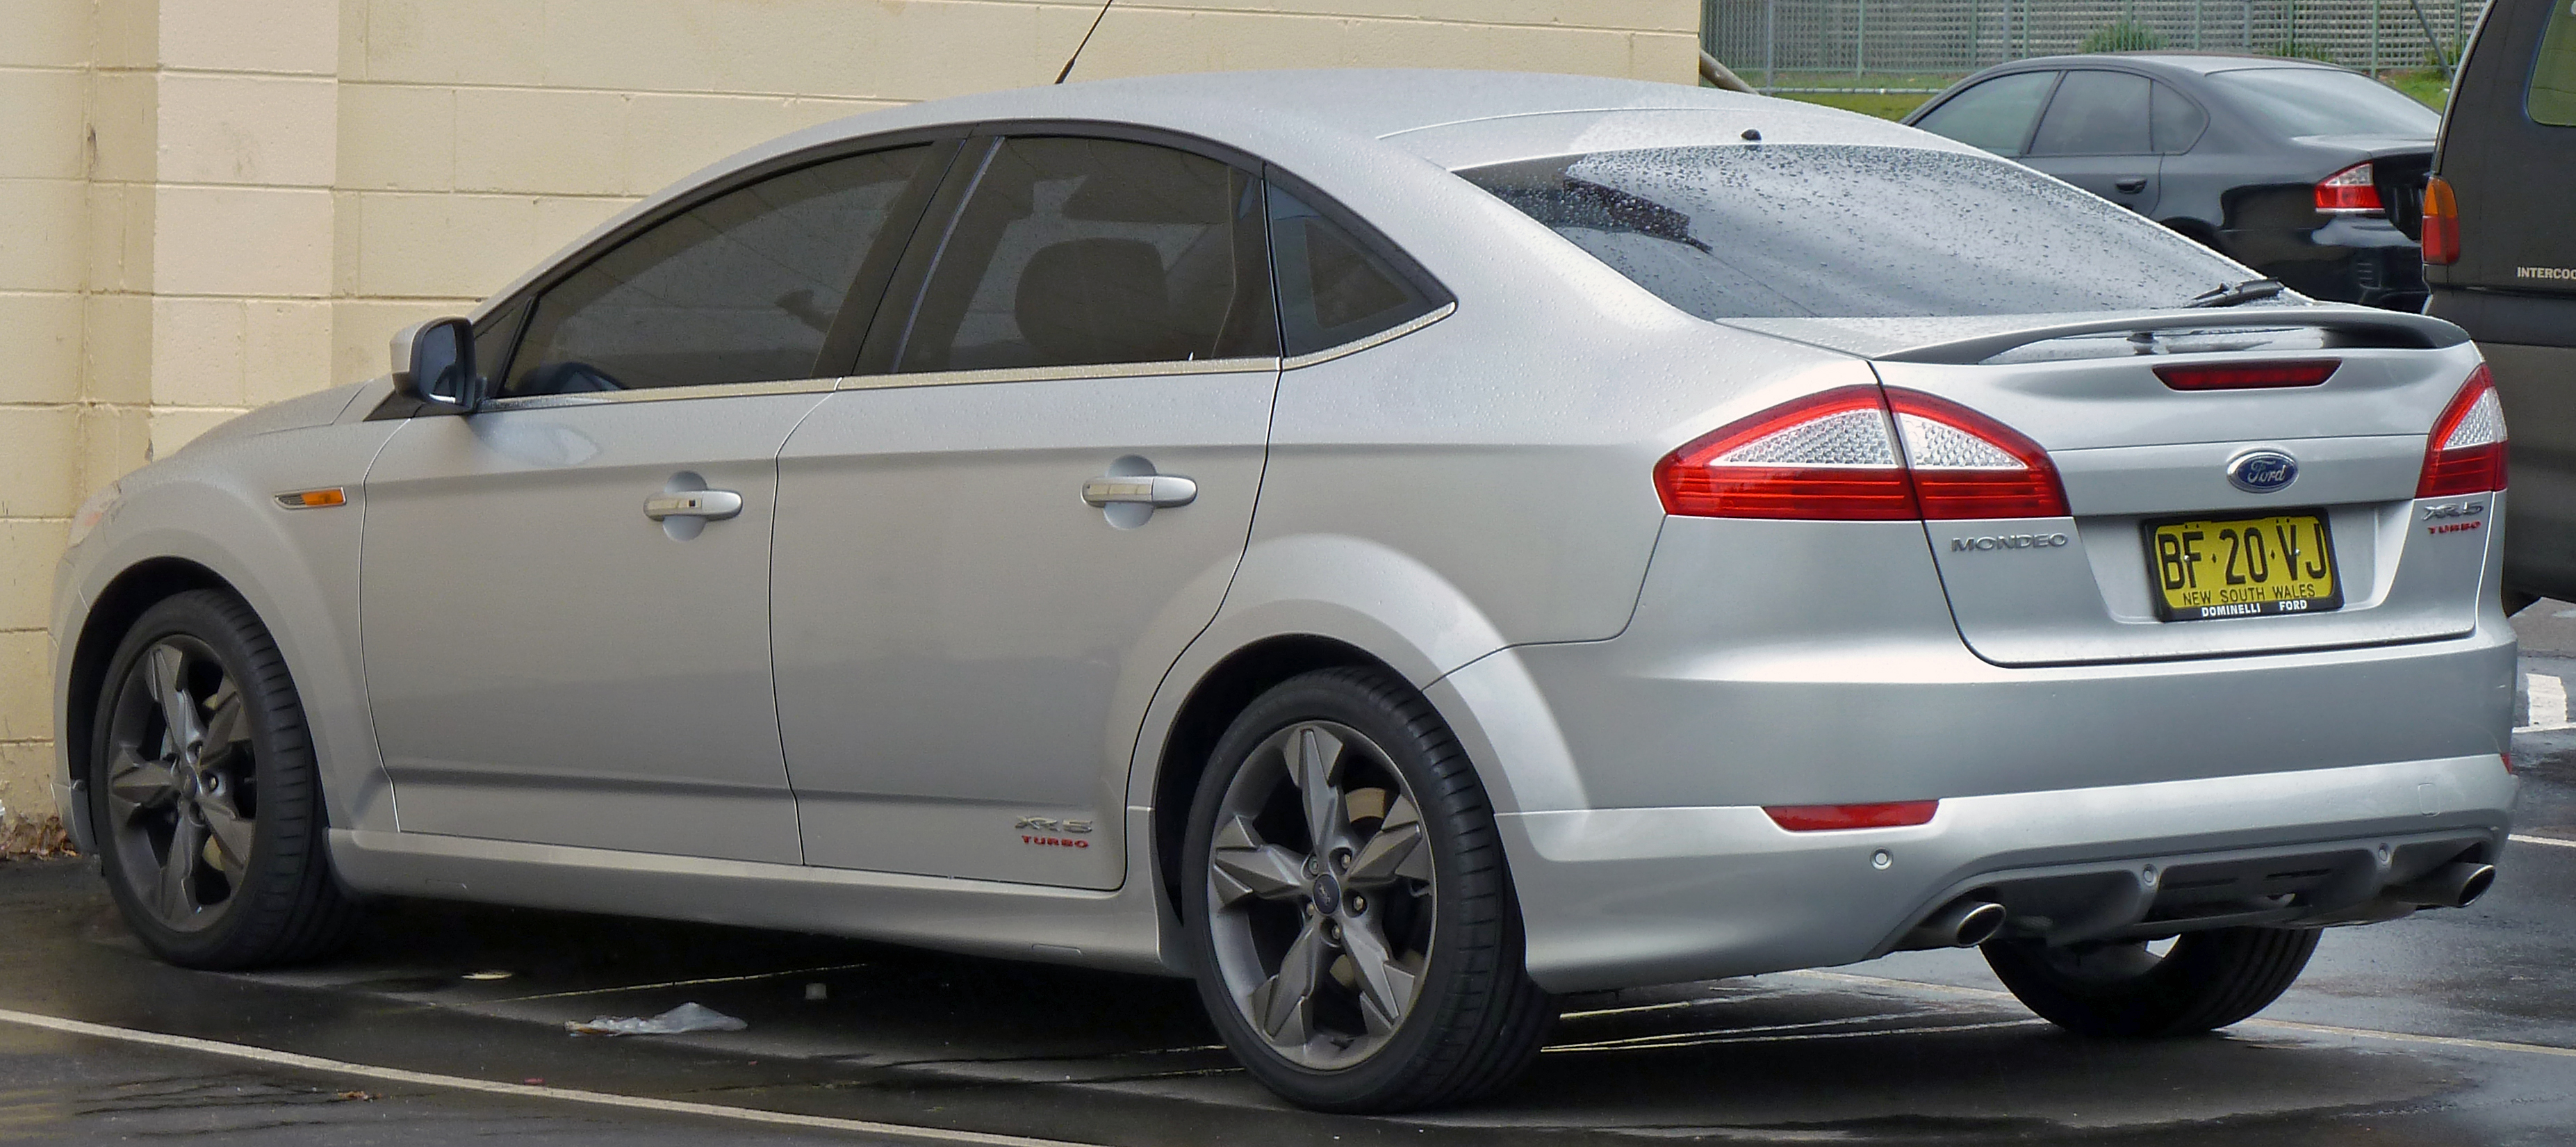 2008 Ford Mondeo iv hatchback – pictures, information and